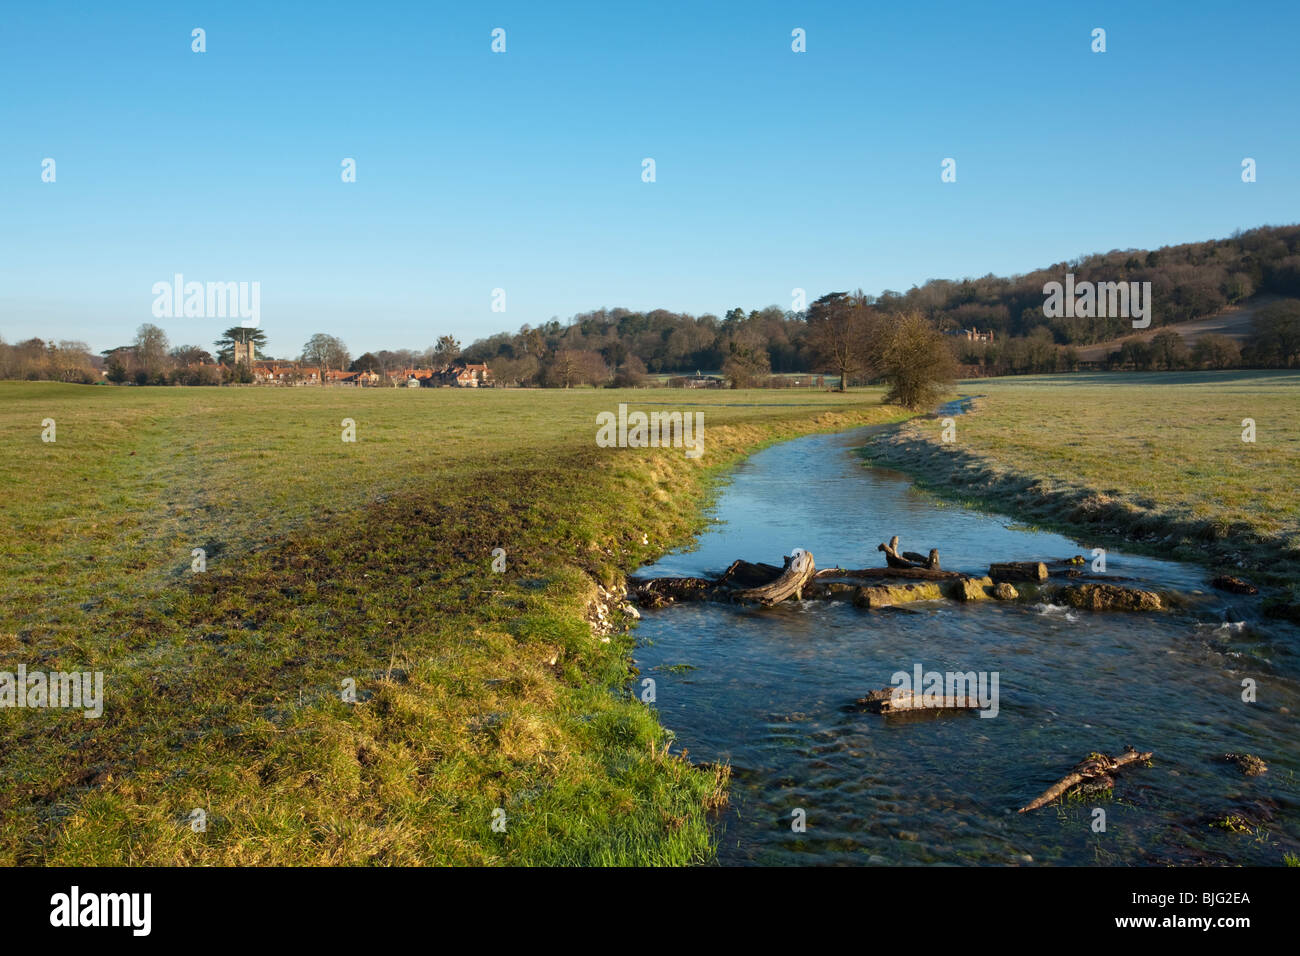 View across the water meadows in the Chilterns towards Hambleden Village, Buckinghamshire, Uk Stock Photo